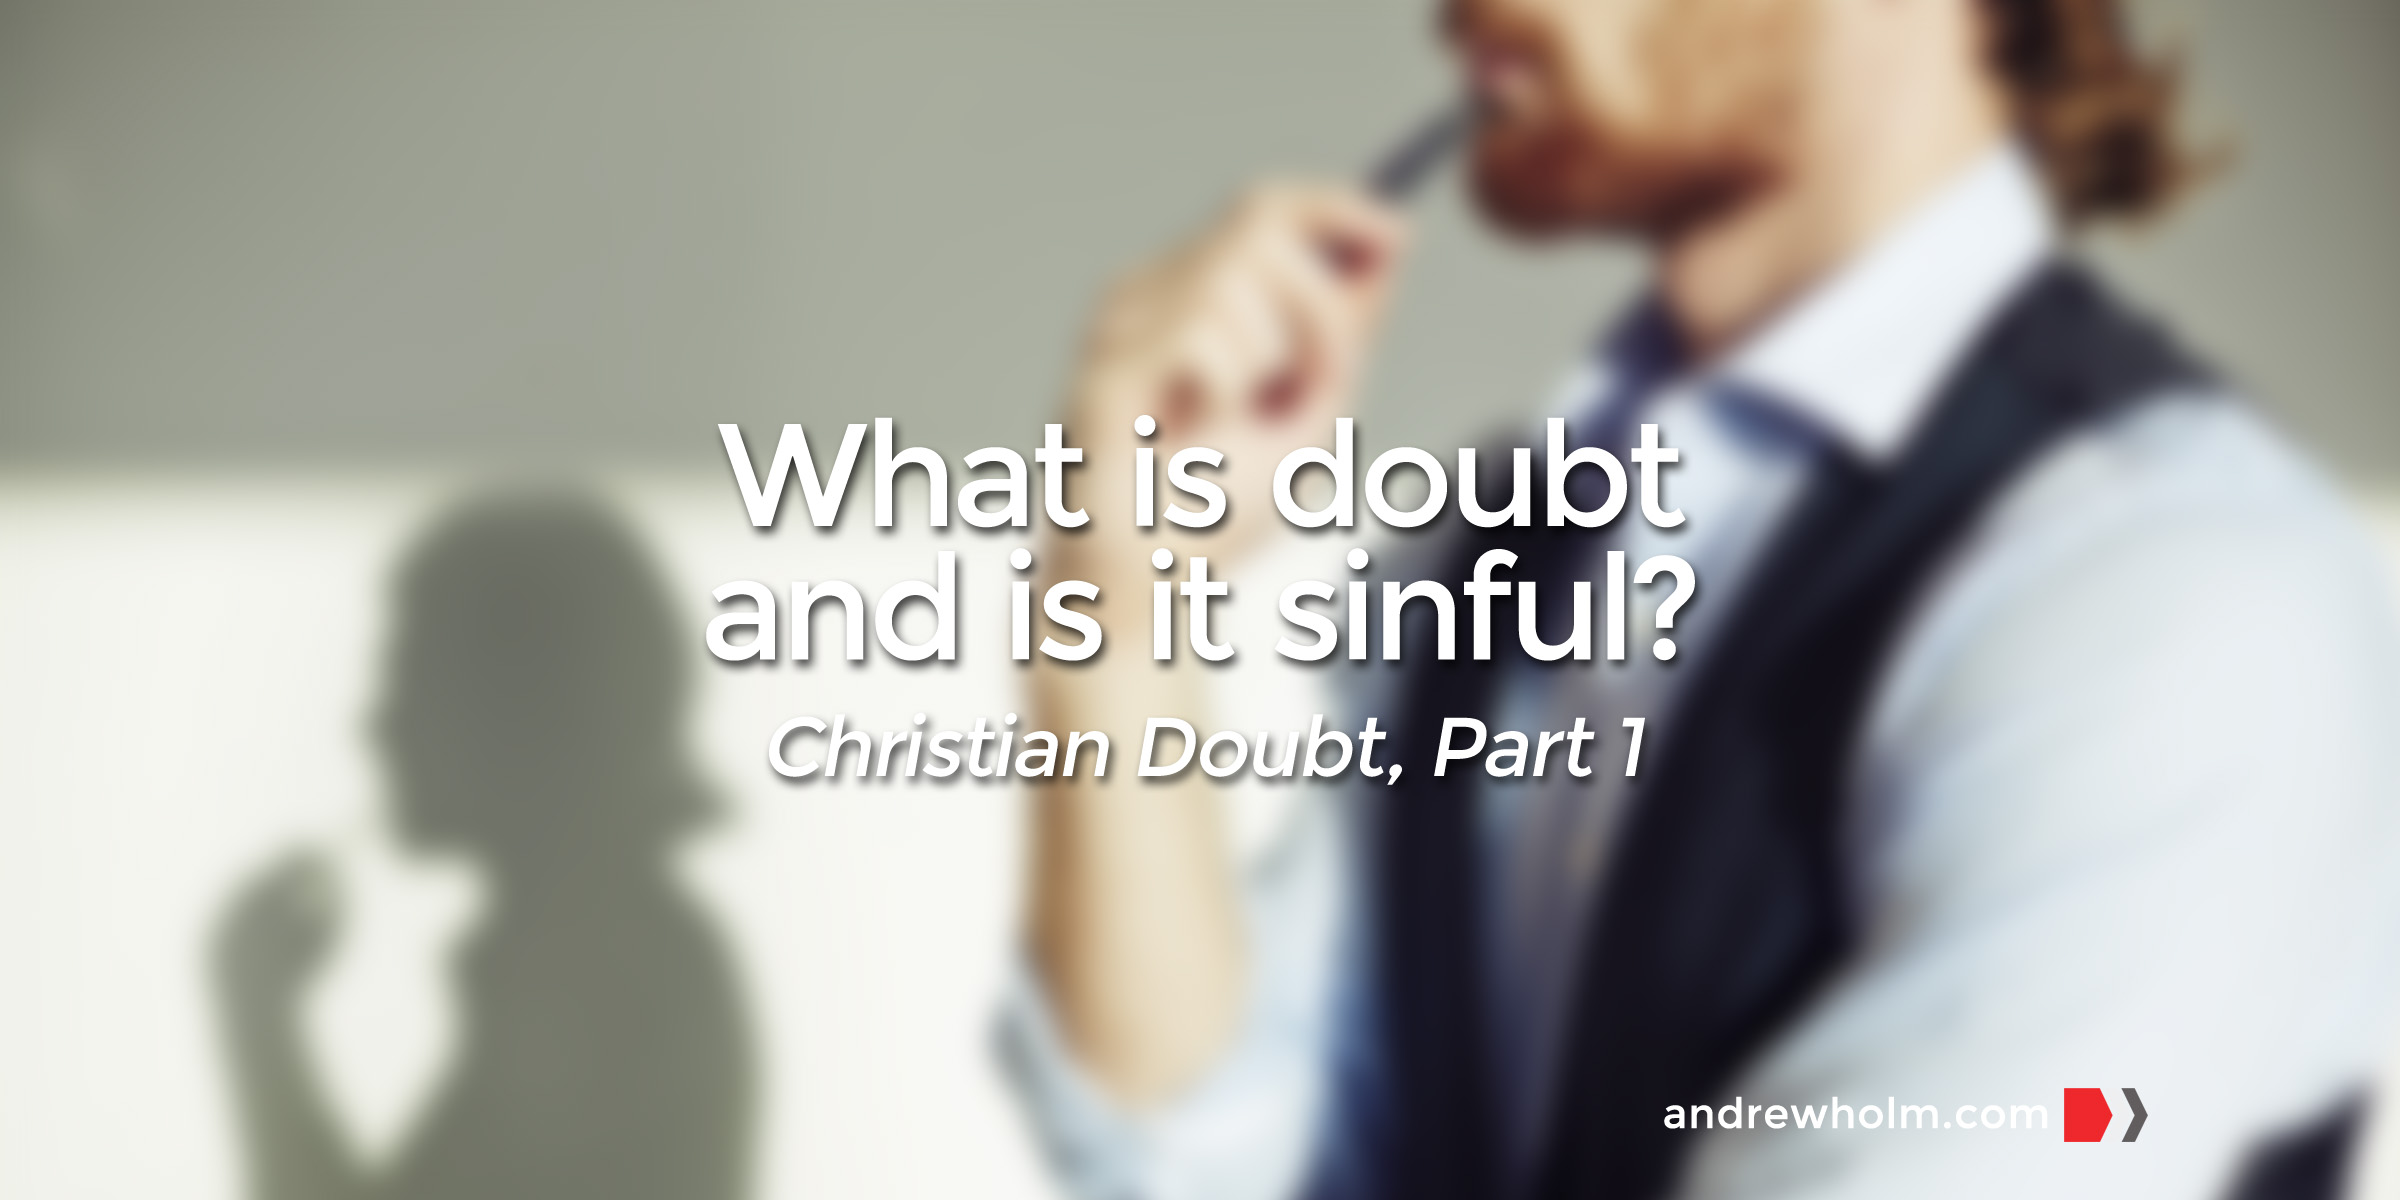 Christian Doubt, Part 1